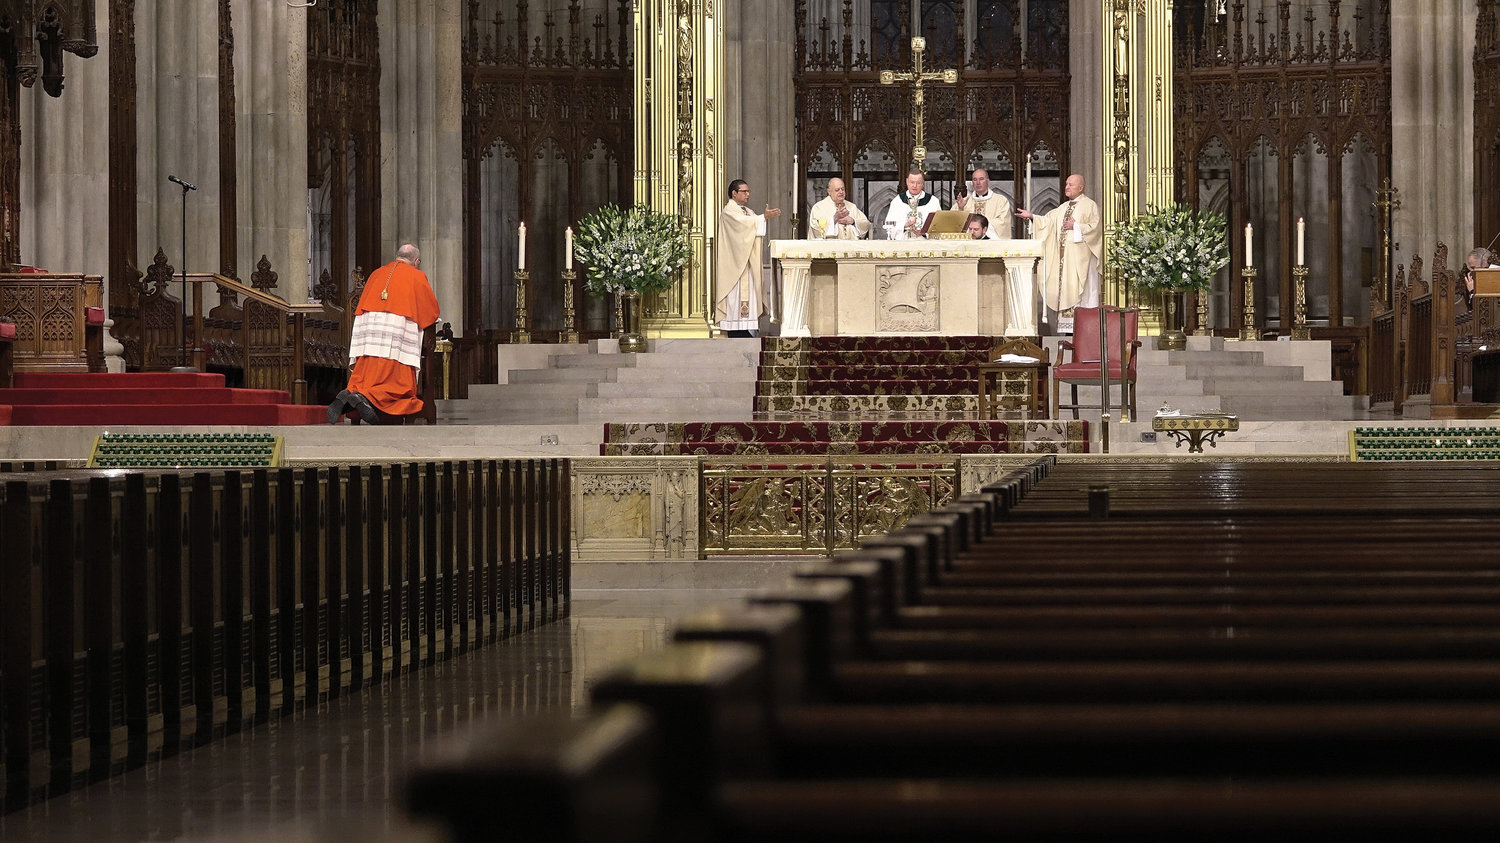 Except for clergy on the altar, St. Patrick's Cathedral was empty during the 2020 St. Patrick's Day Mass, which was offered as the Covid-19 pandemic was unfolding in New York. Cardinal Dolan will serve as celebrant for this year's St. Patrick's Day Mass at the cathedral Wednesday, March 17.